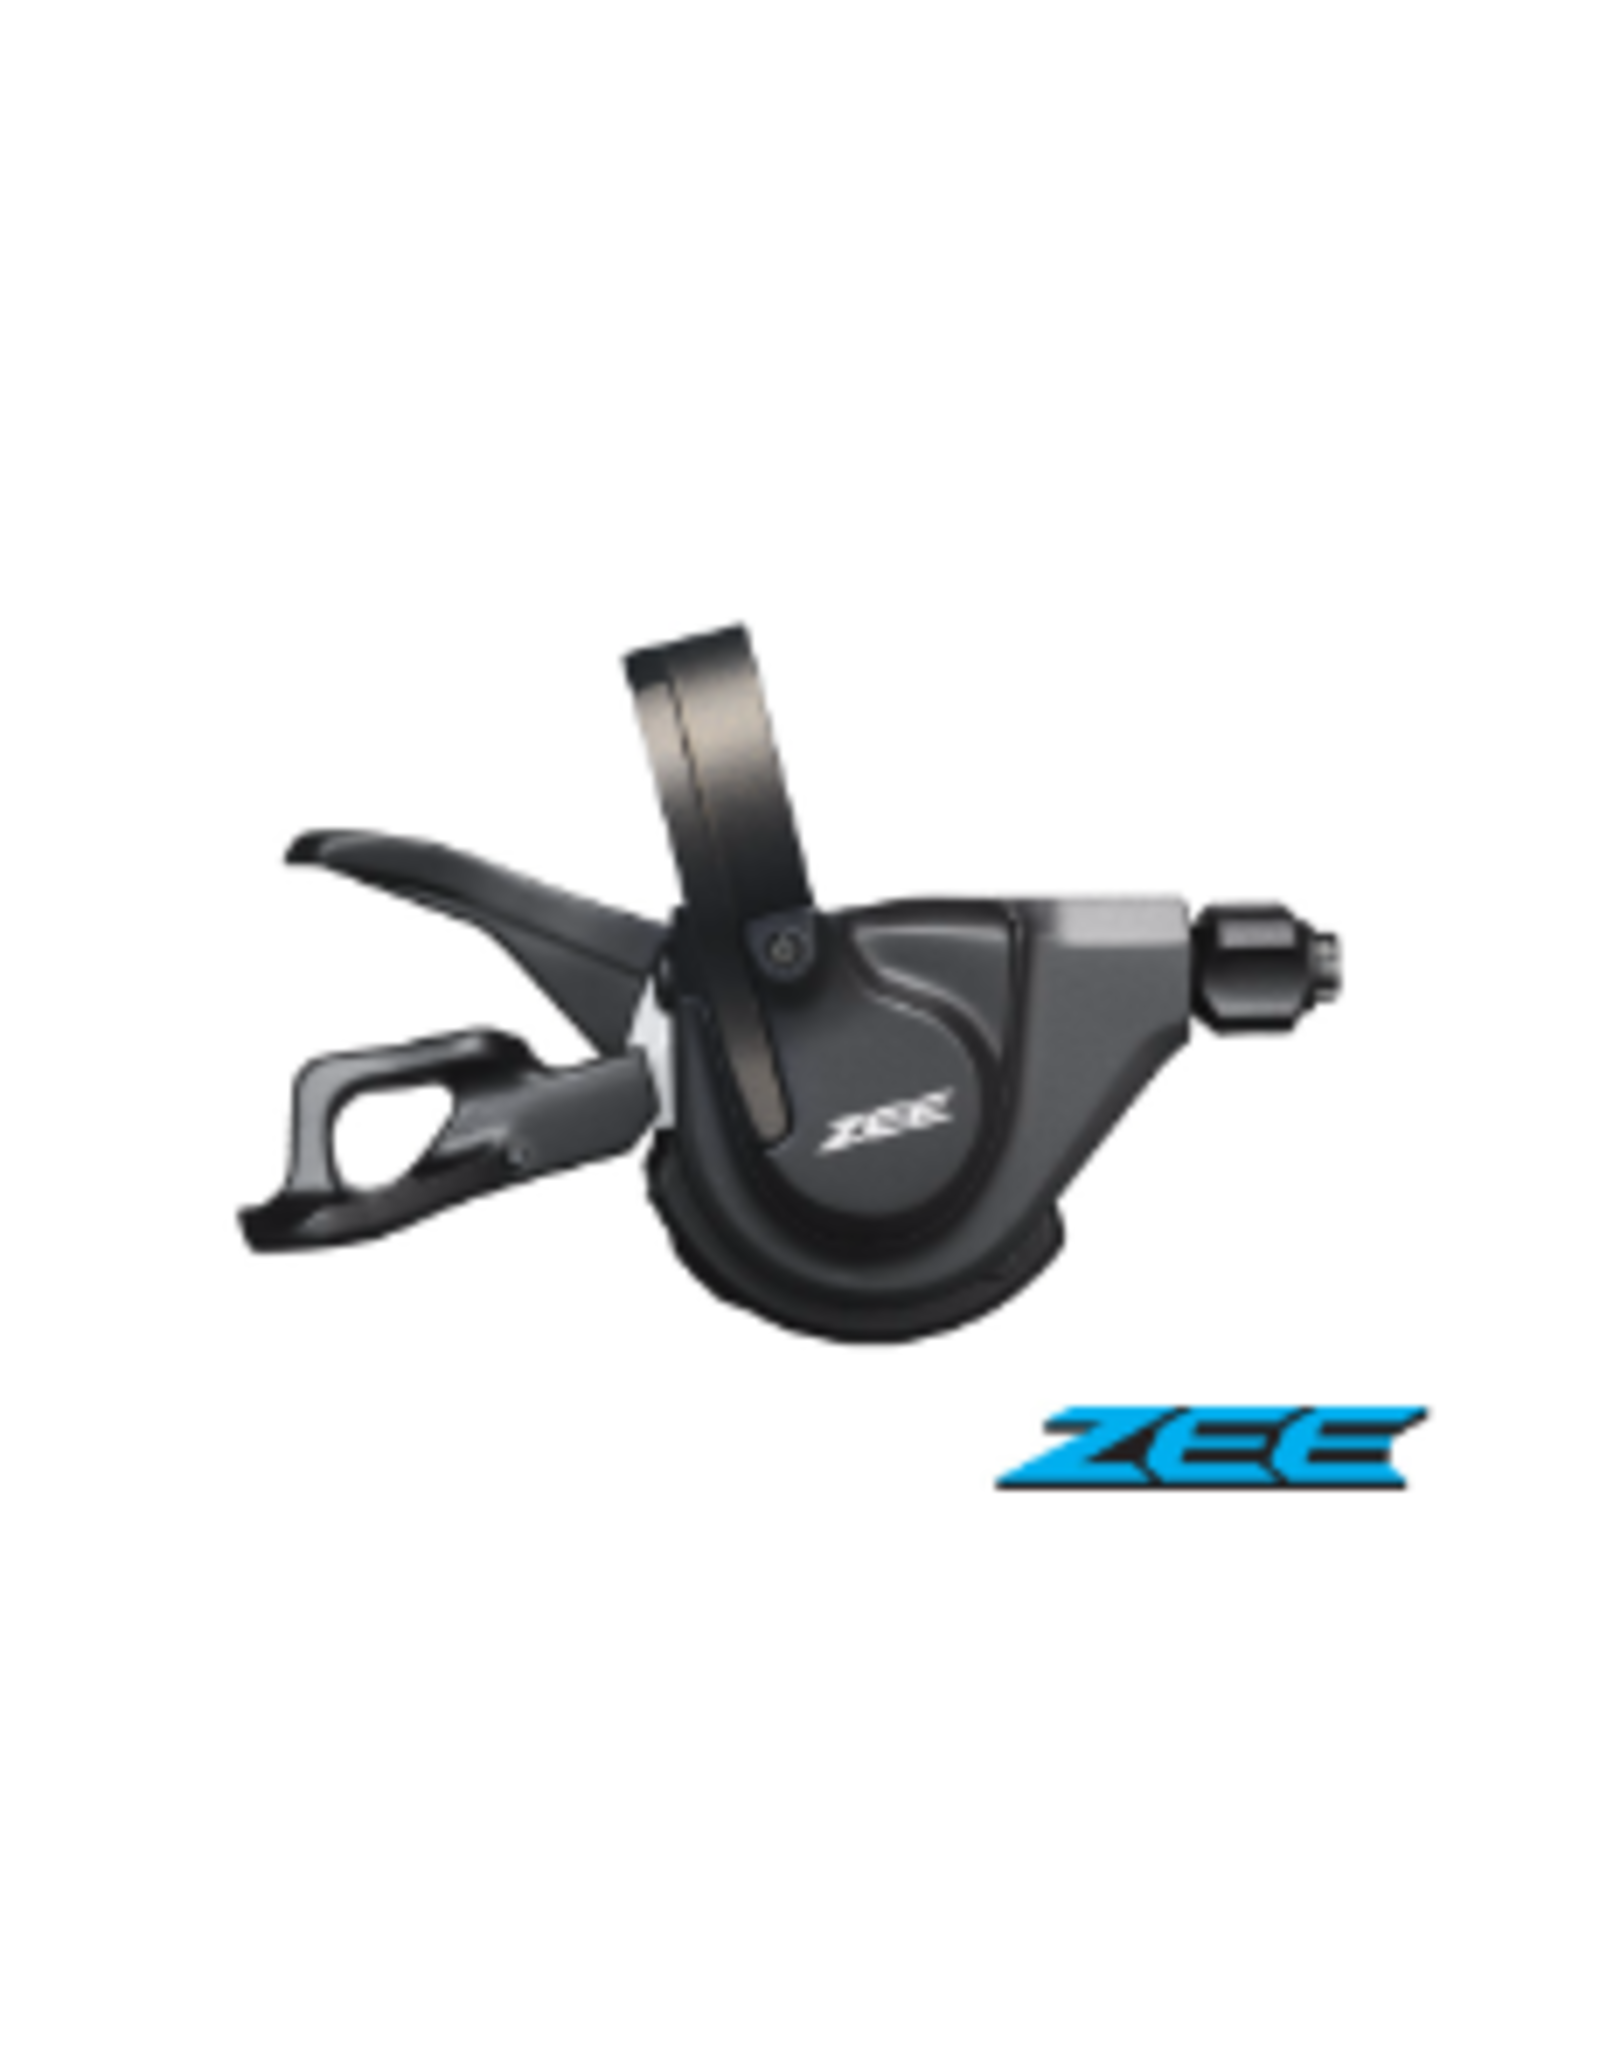 Shimano SHIFT LEVER SHIMANO ZEE SL-M640 RIGHT 10 SPEED